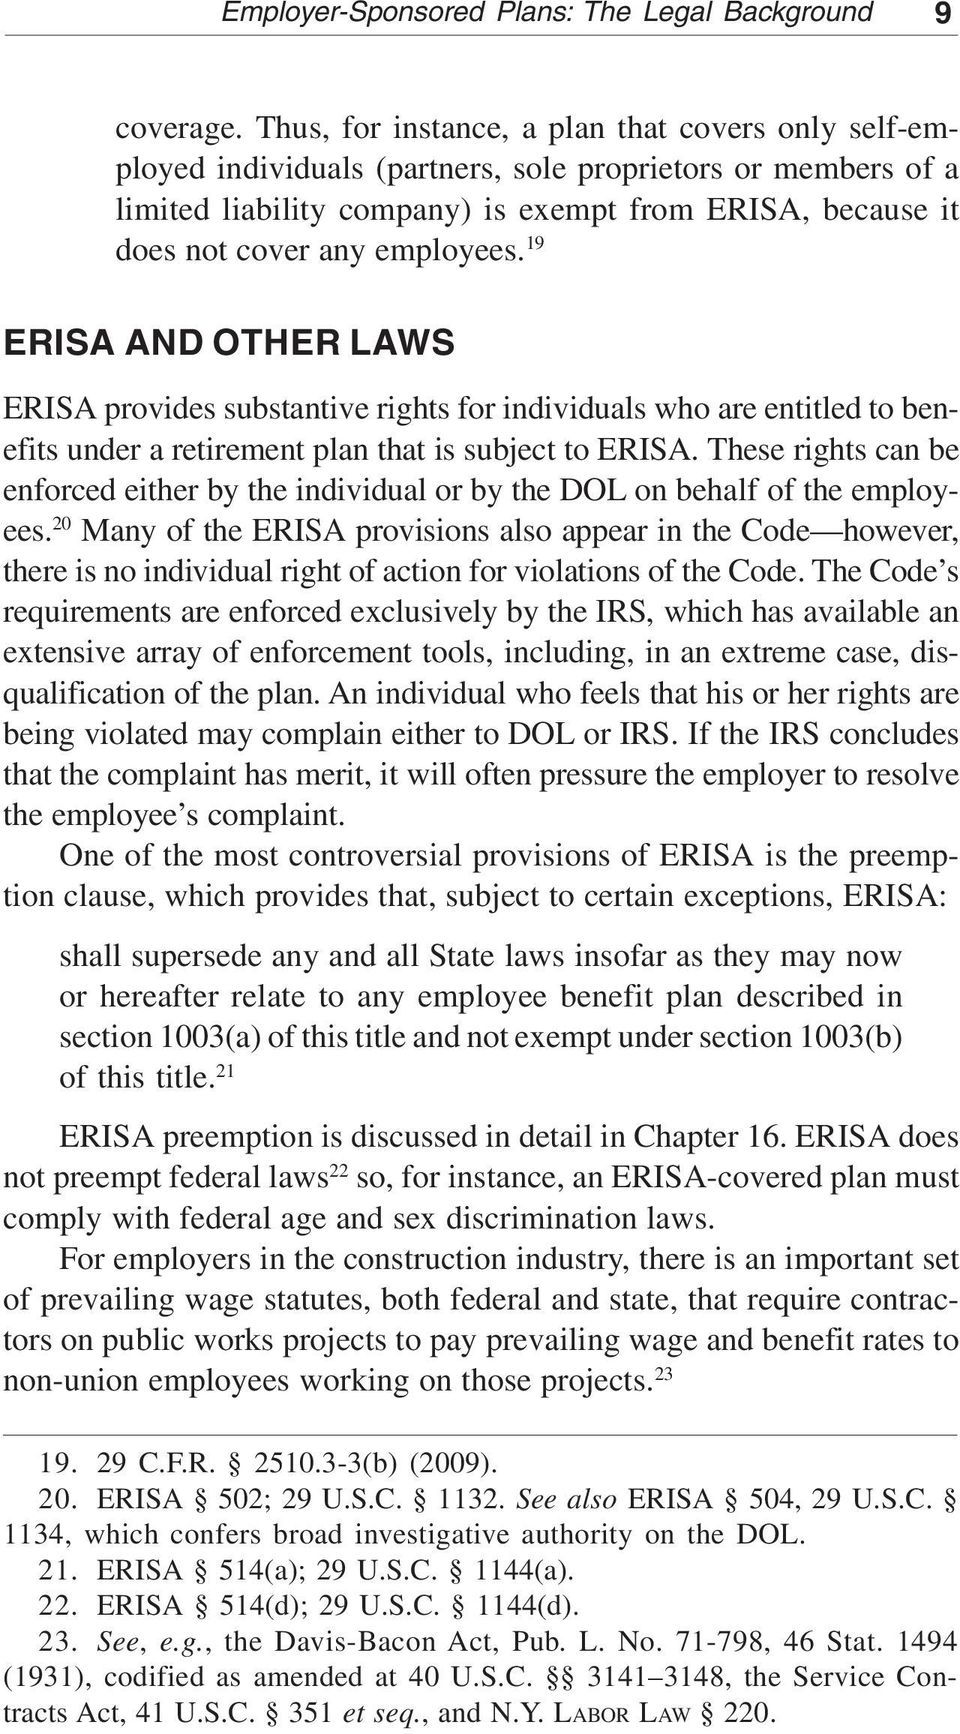 employees. 19 ERISA AND OTHER LAWS ERISA provides substantive rights for individuals who are entitled to benefits under a retirement plan that is subject to ERISA.